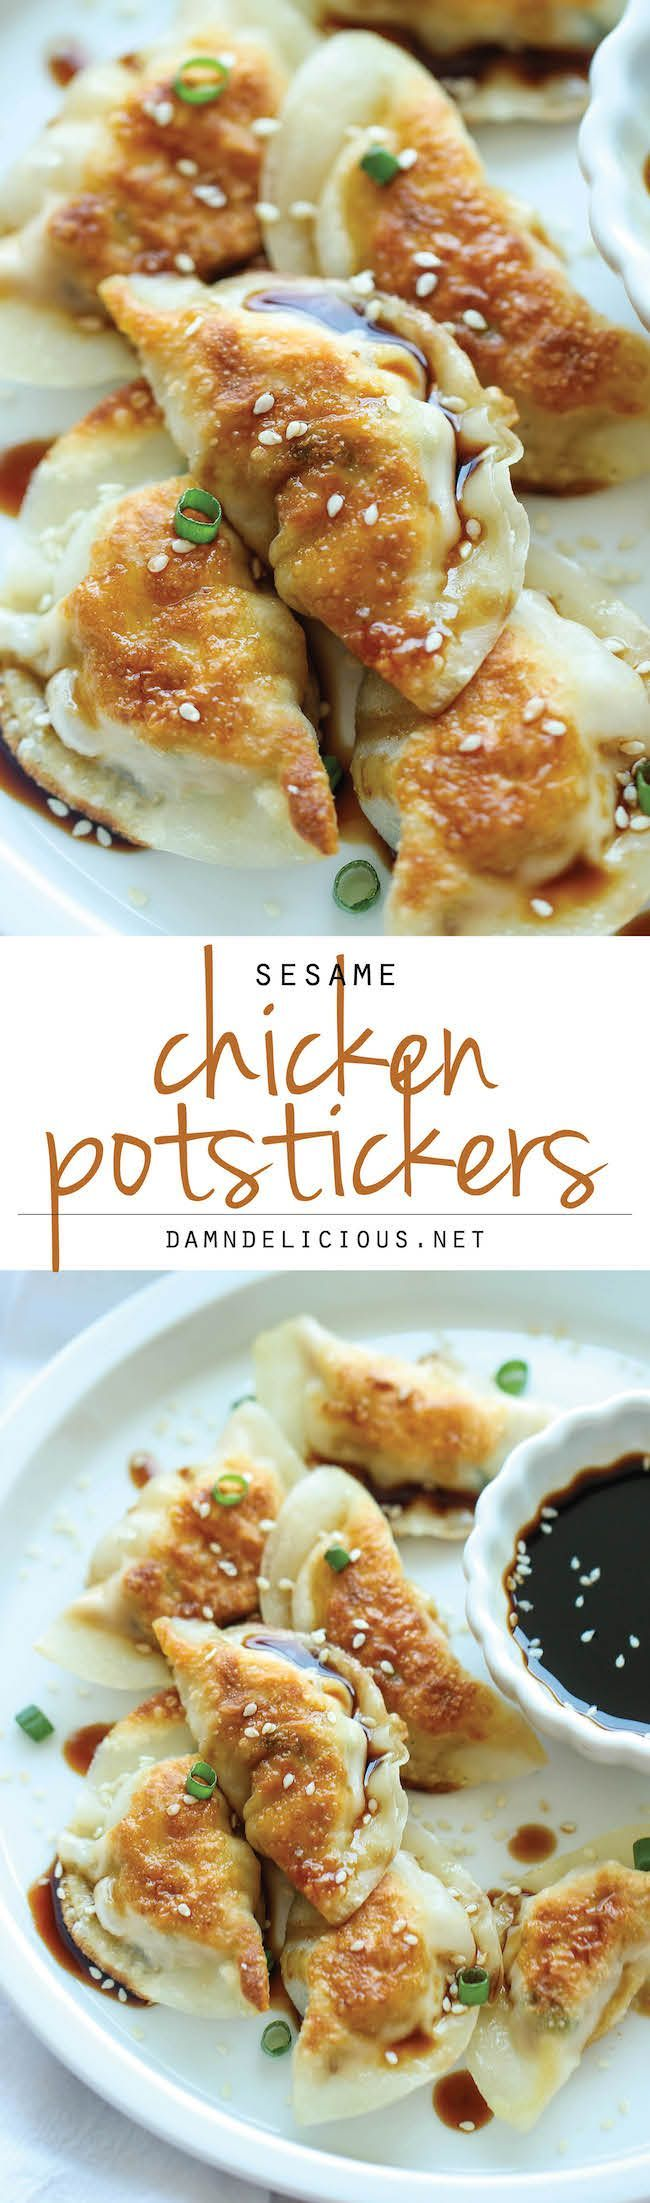 Sesame Chicken Potstickers - These are unbelievably easy to make, freezer friendly and perfect for busy weeknights! @damndelicious #ReadywithTeeter